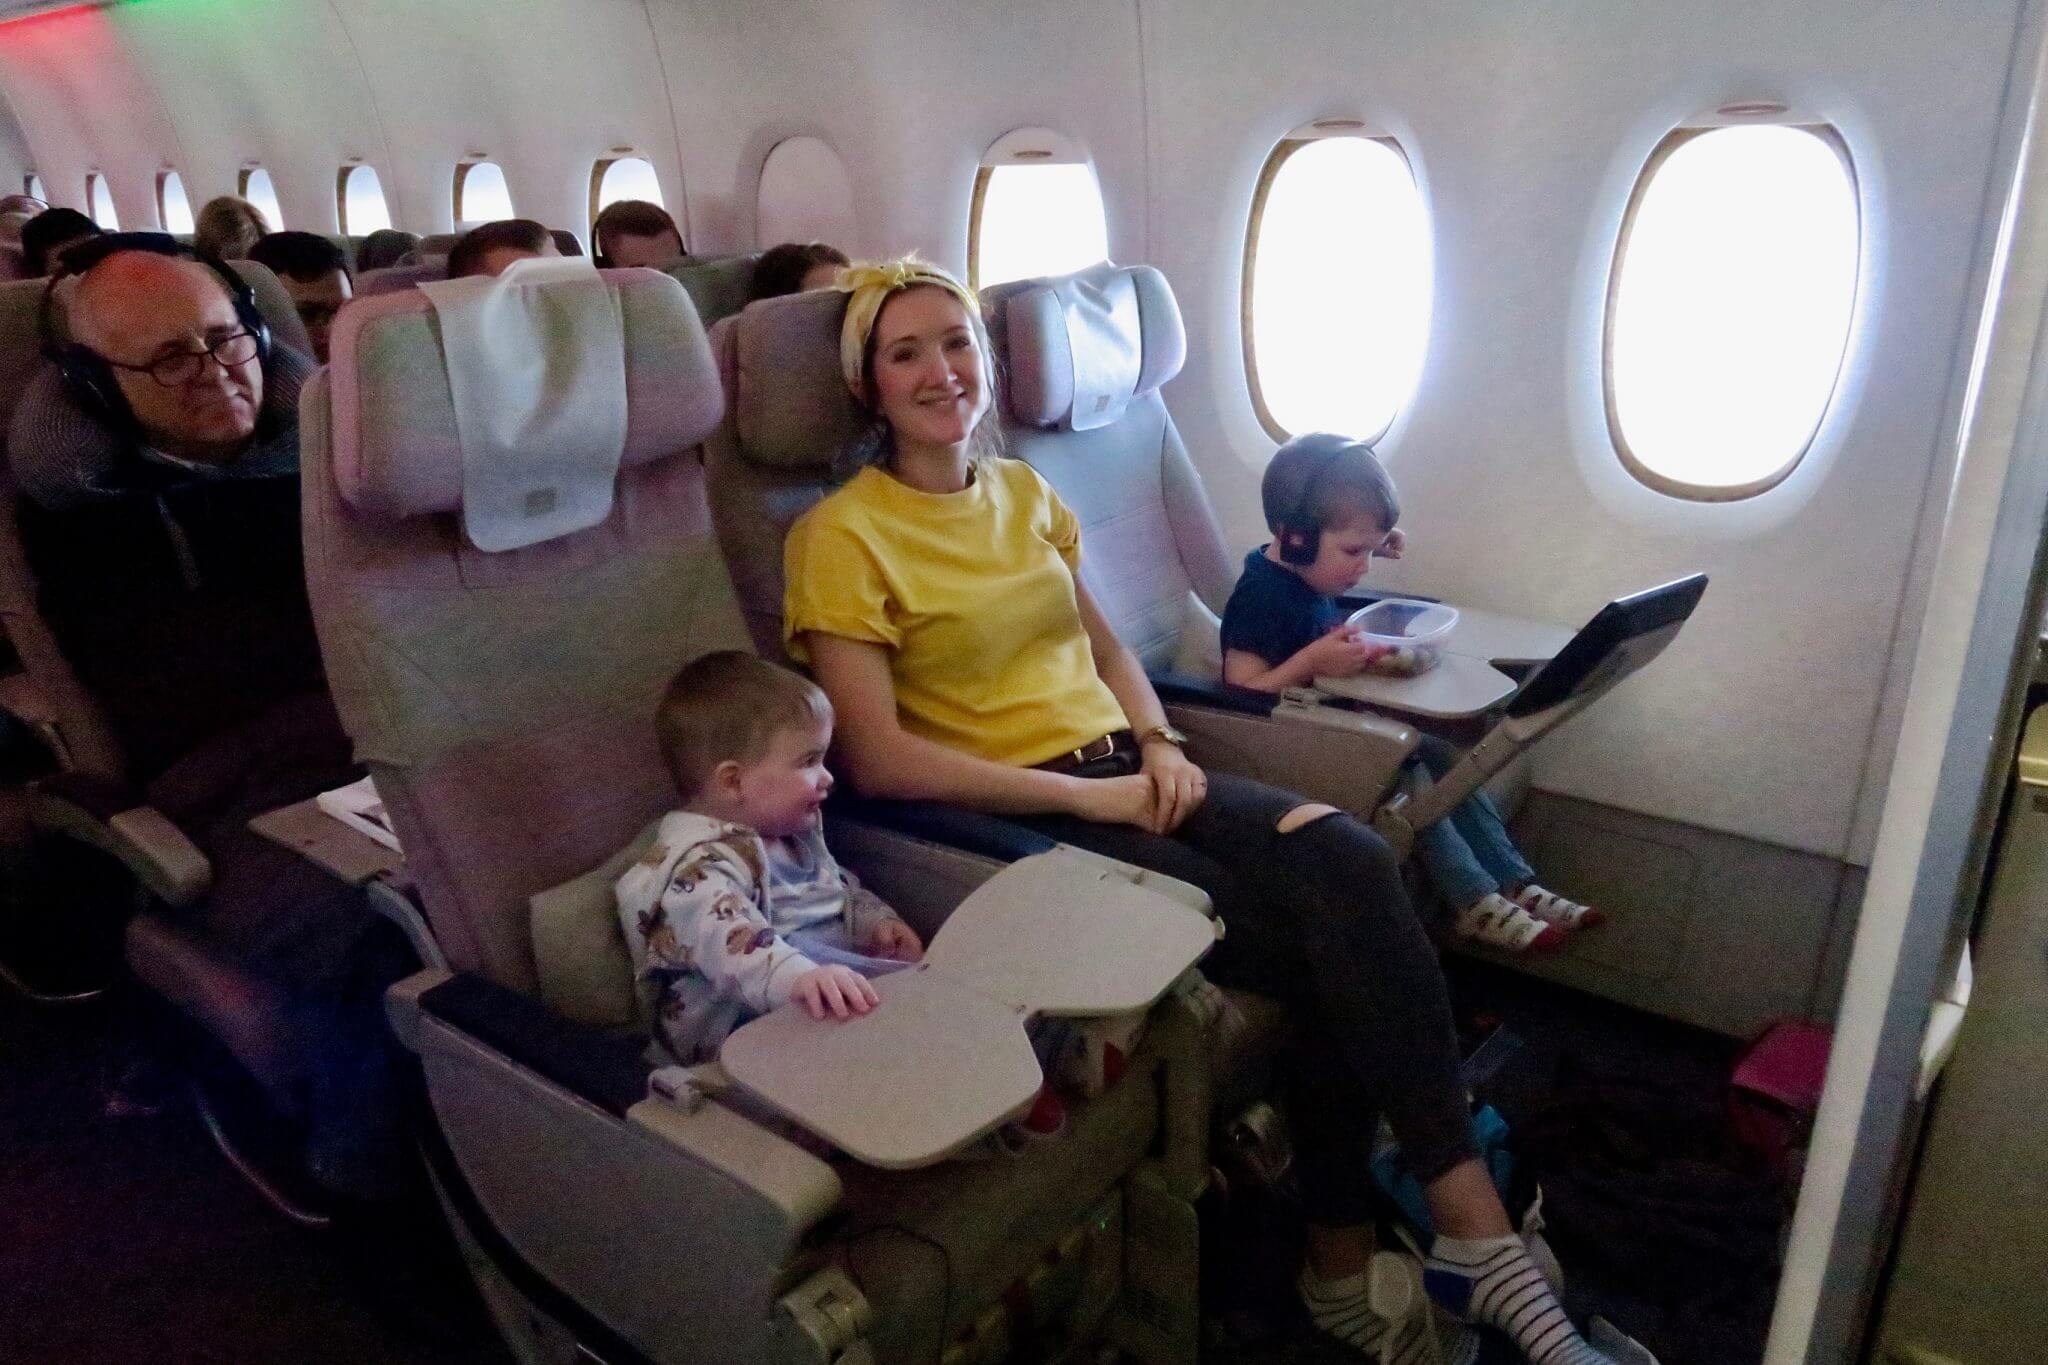 The Travel Hack and children